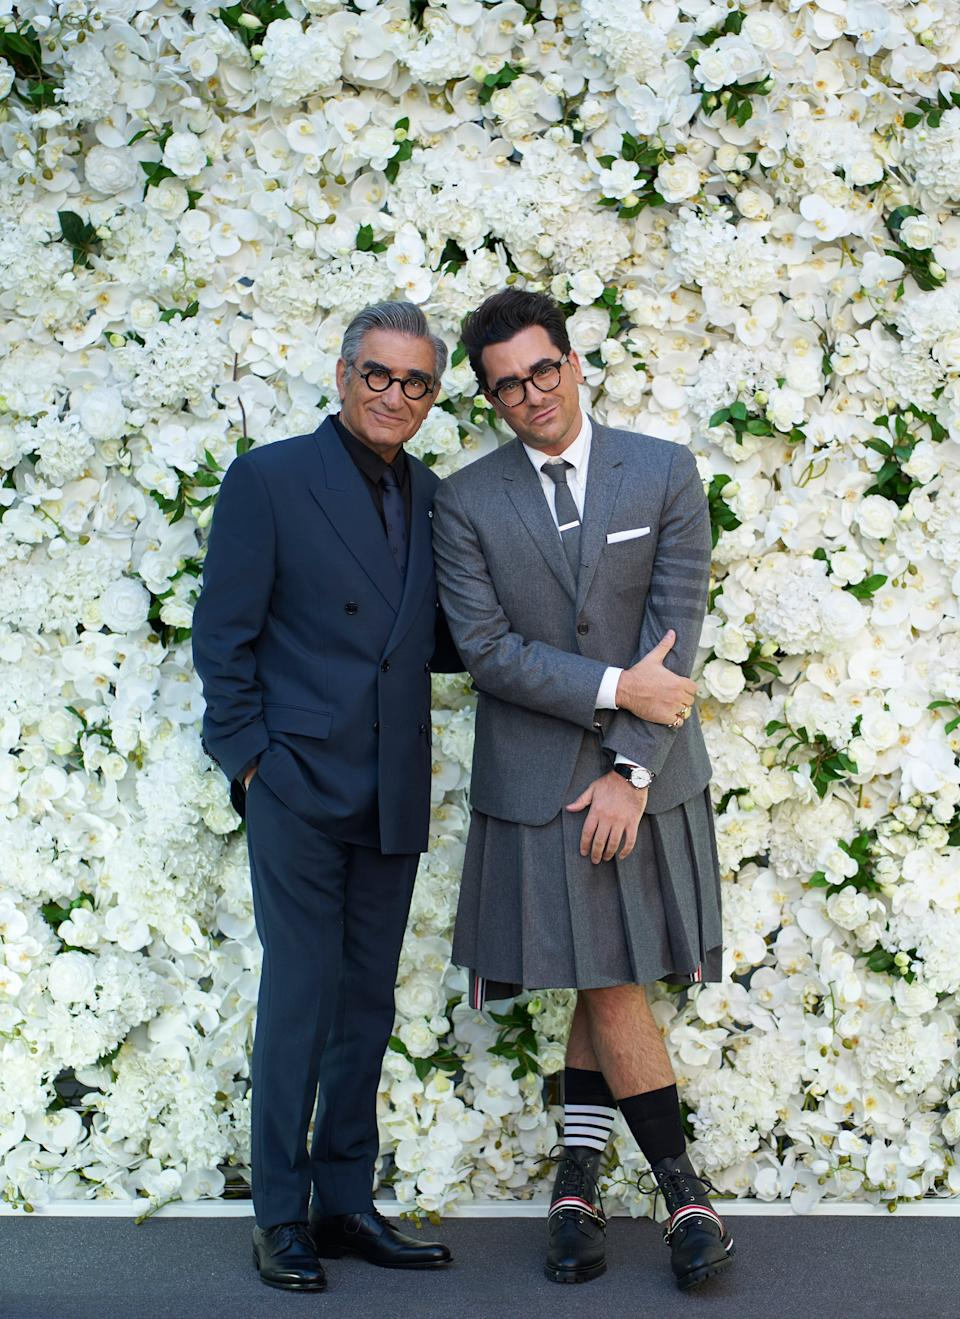 """<h2>Eugene Levy in Dior & Dan Levy in Thom Browne<br></h2>In addition to making us tear up dramatically during <em><a href=""""https://www.refinery29.com/en-us/2020/09/10036865/schitts-creek-emmy-wins-7-awards-comedy-series-record"""" rel=""""nofollow noopener"""" target=""""_blank"""" data-ylk=""""slk:all"""" class=""""link rapid-noclick-resp"""">all</a></em><a href=""""https://www.refinery29.com/en-us/2020/09/10036865/schitts-creek-emmy-wins-7-awards-comedy-series-record"""" rel=""""nofollow noopener"""" target=""""_blank"""" data-ylk=""""slk:of their victory speeches"""" class=""""link rapid-noclick-resp""""> of their victory speeches</a> tonight, Eugene Levy and his son-slash-writing-partner Dan, dressed their absolute best at <em><a href=""""https://www.refinery29.com/en-us/2020/09/10036812/schitts-creek-emmys-party-tent-casa-loma-toronto"""" rel=""""nofollow noopener"""" target=""""_blank"""" data-ylk=""""slk:Schitt's Creek"""" class=""""link rapid-noclick-resp"""">Schitt's Creek</a></em><a href=""""https://www.refinery29.com/en-us/2020/09/10036812/schitts-creek-emmys-party-tent-casa-loma-toronto"""" rel=""""nofollow noopener"""" target=""""_blank"""" data-ylk=""""slk:'s Emmys party"""" class=""""link rapid-noclick-resp"""">'s Emmys party</a>. Eugene in a clashing (in a good way) navy-and-black Dior suit and Dan in a pleated skirt and matching blazer courtesy of Thom Browne."""